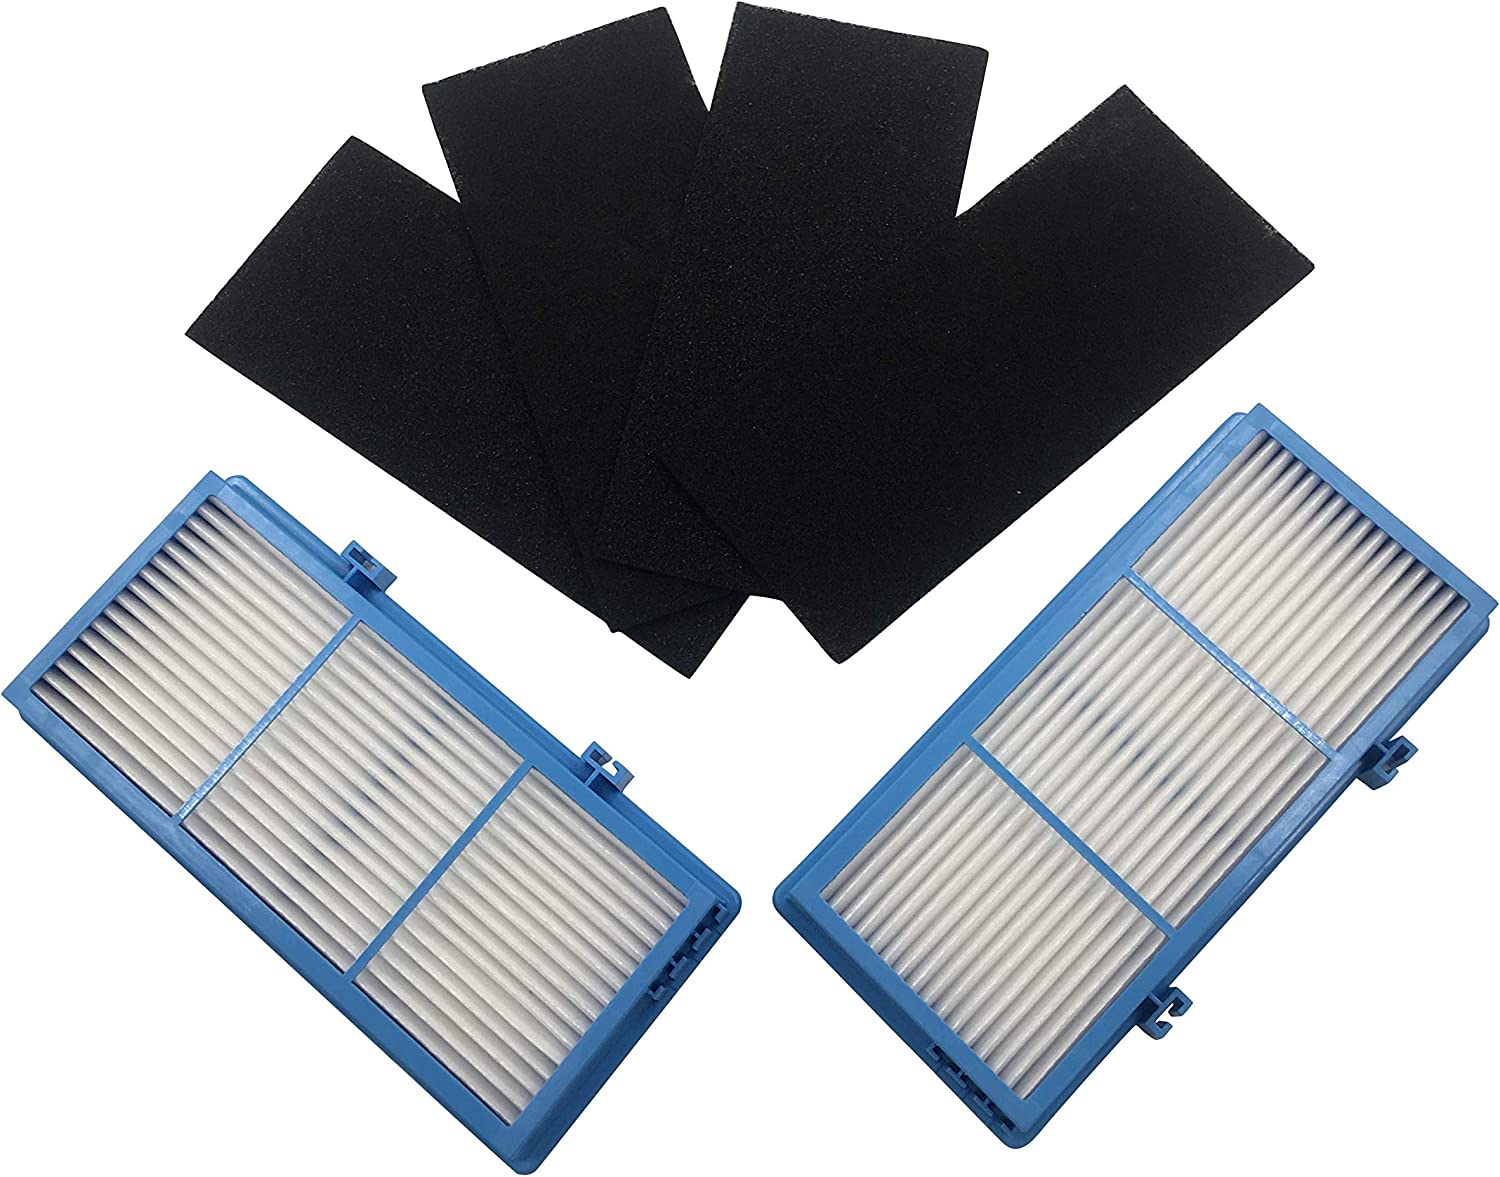 GreenR3 2-Pack Replacement HEPA Air Filter Kit For Holmes AER1 Total Air Fits HAPF30AT HAPF30AT4 HAP242 HAP412 HAP422 Bionaire BAP260 BAP815 BAP520 BAP825 Include 2xHEPA Filters + 4xCarbon Pre-Filters